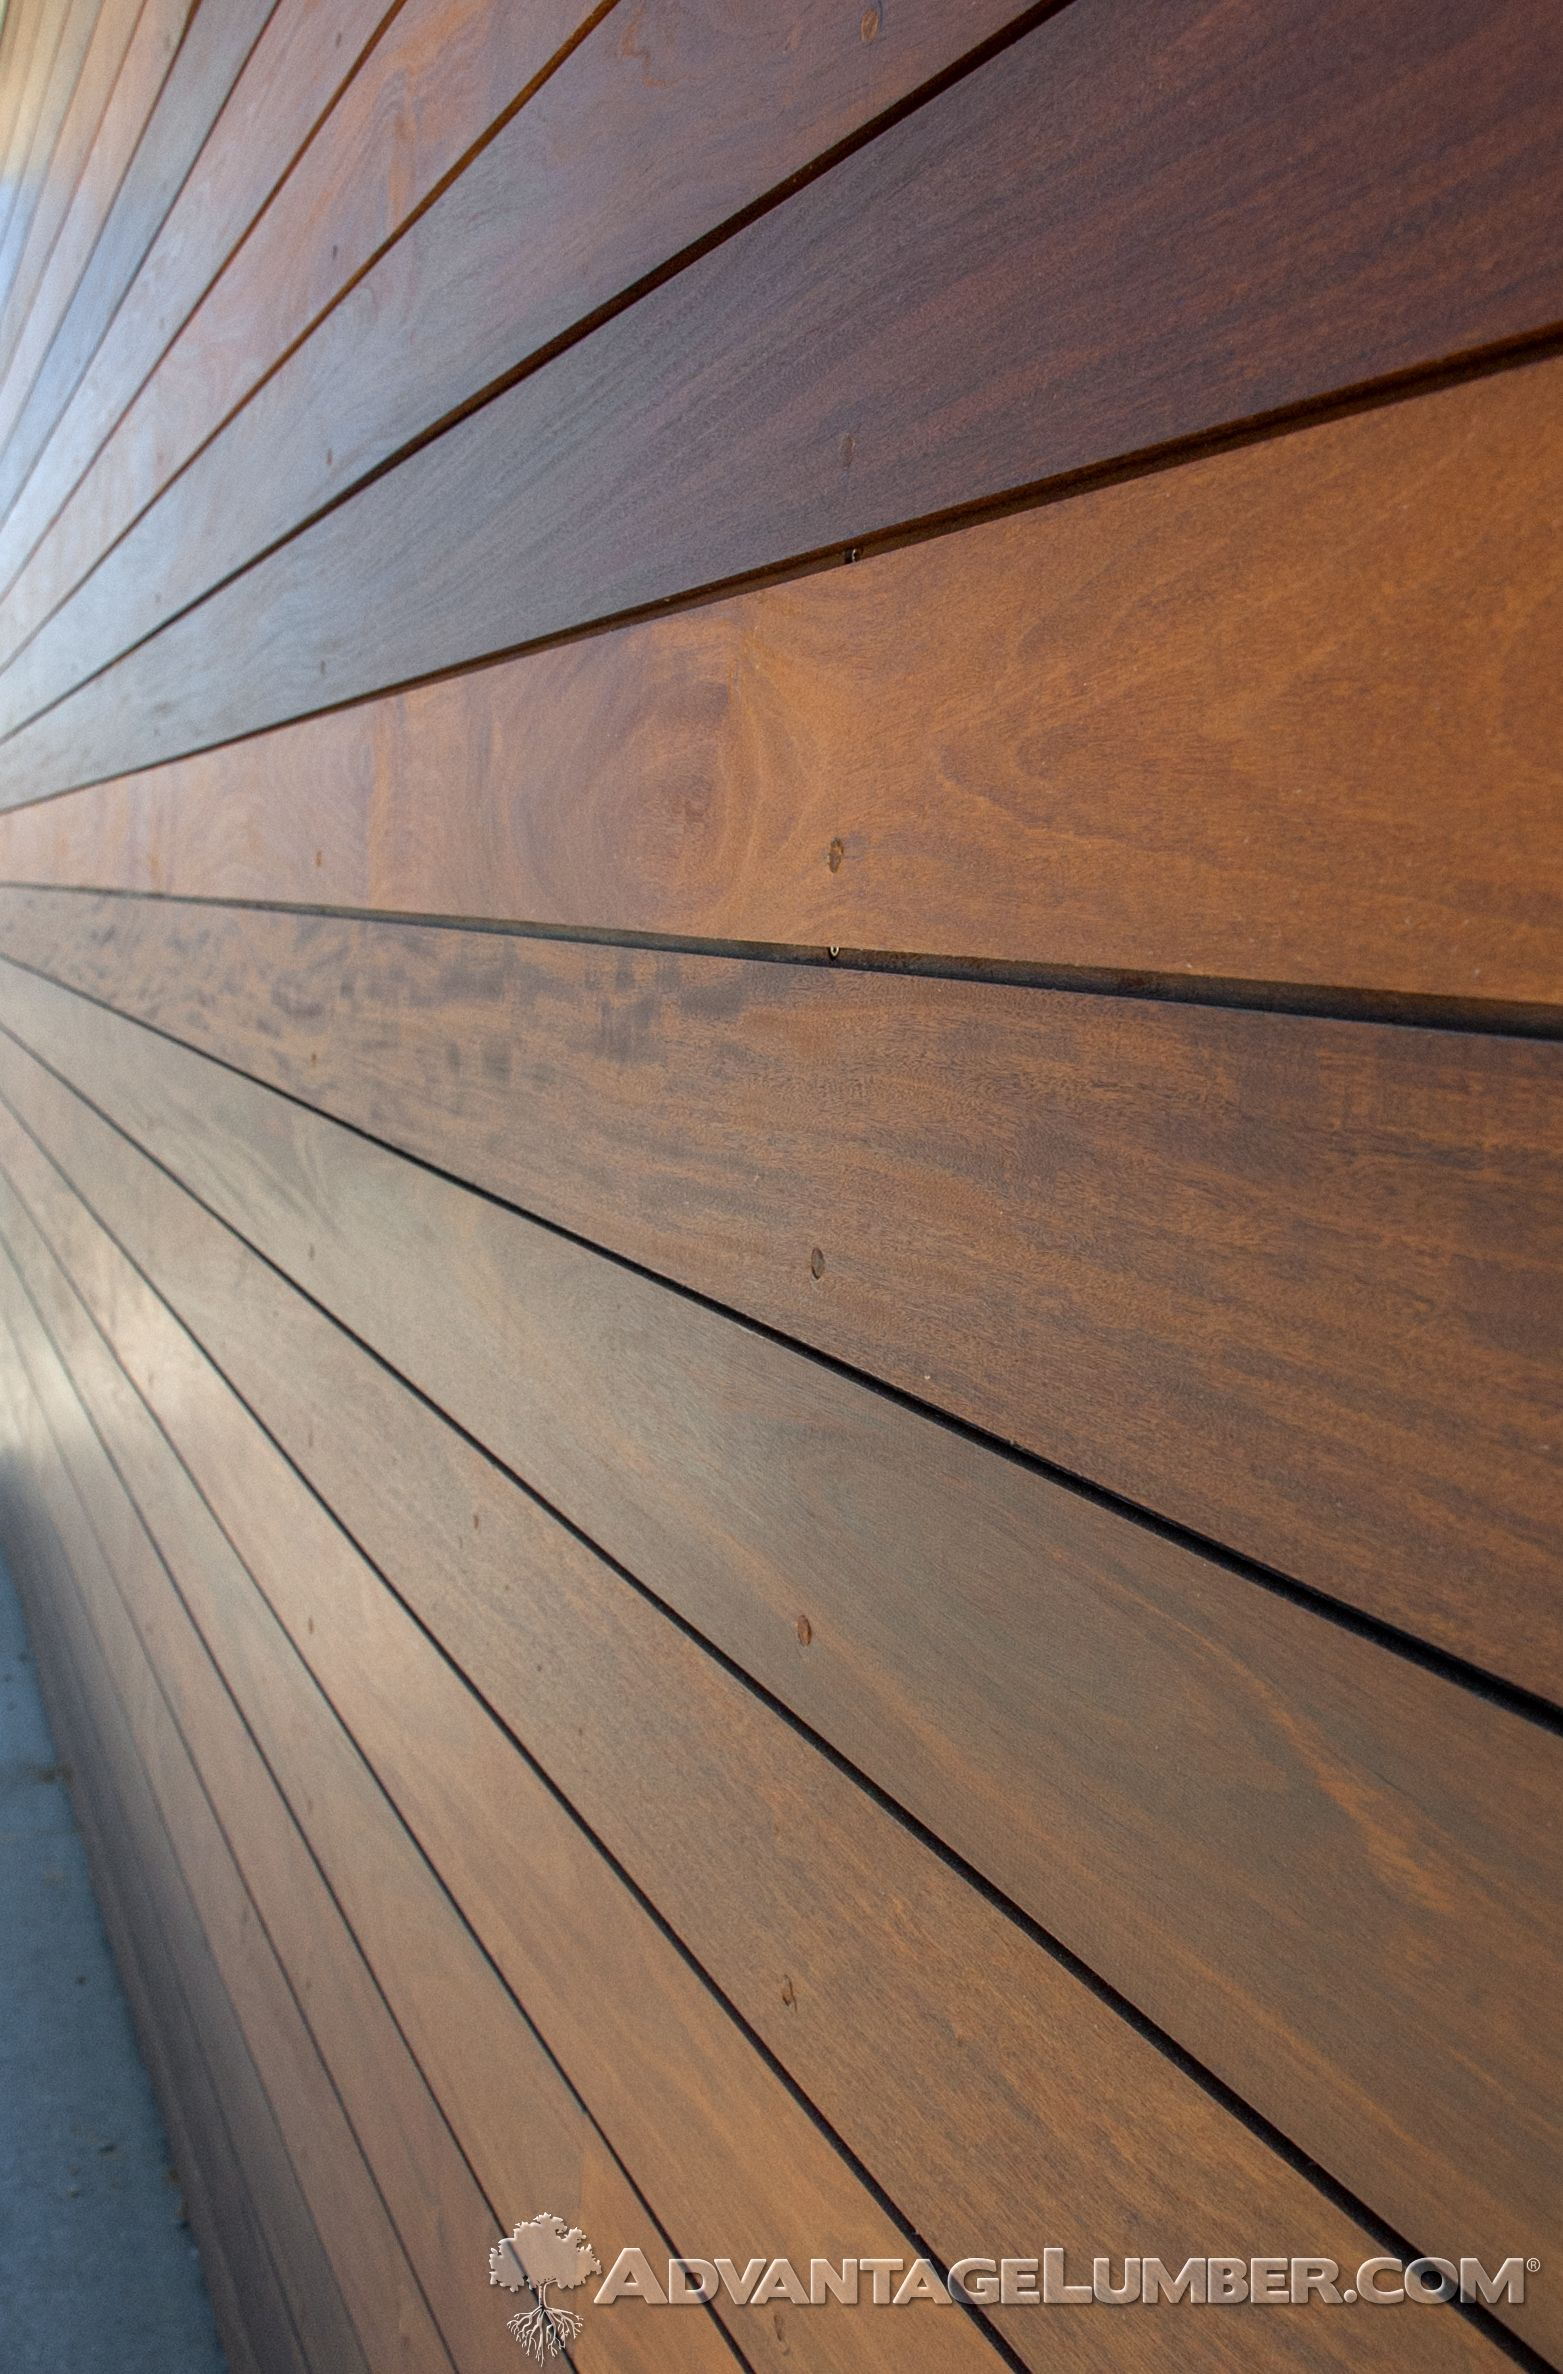 Wood Siding Photos Exterior Siding Pictures Shiplap Siding Wood Siding Wood Siding Exterior